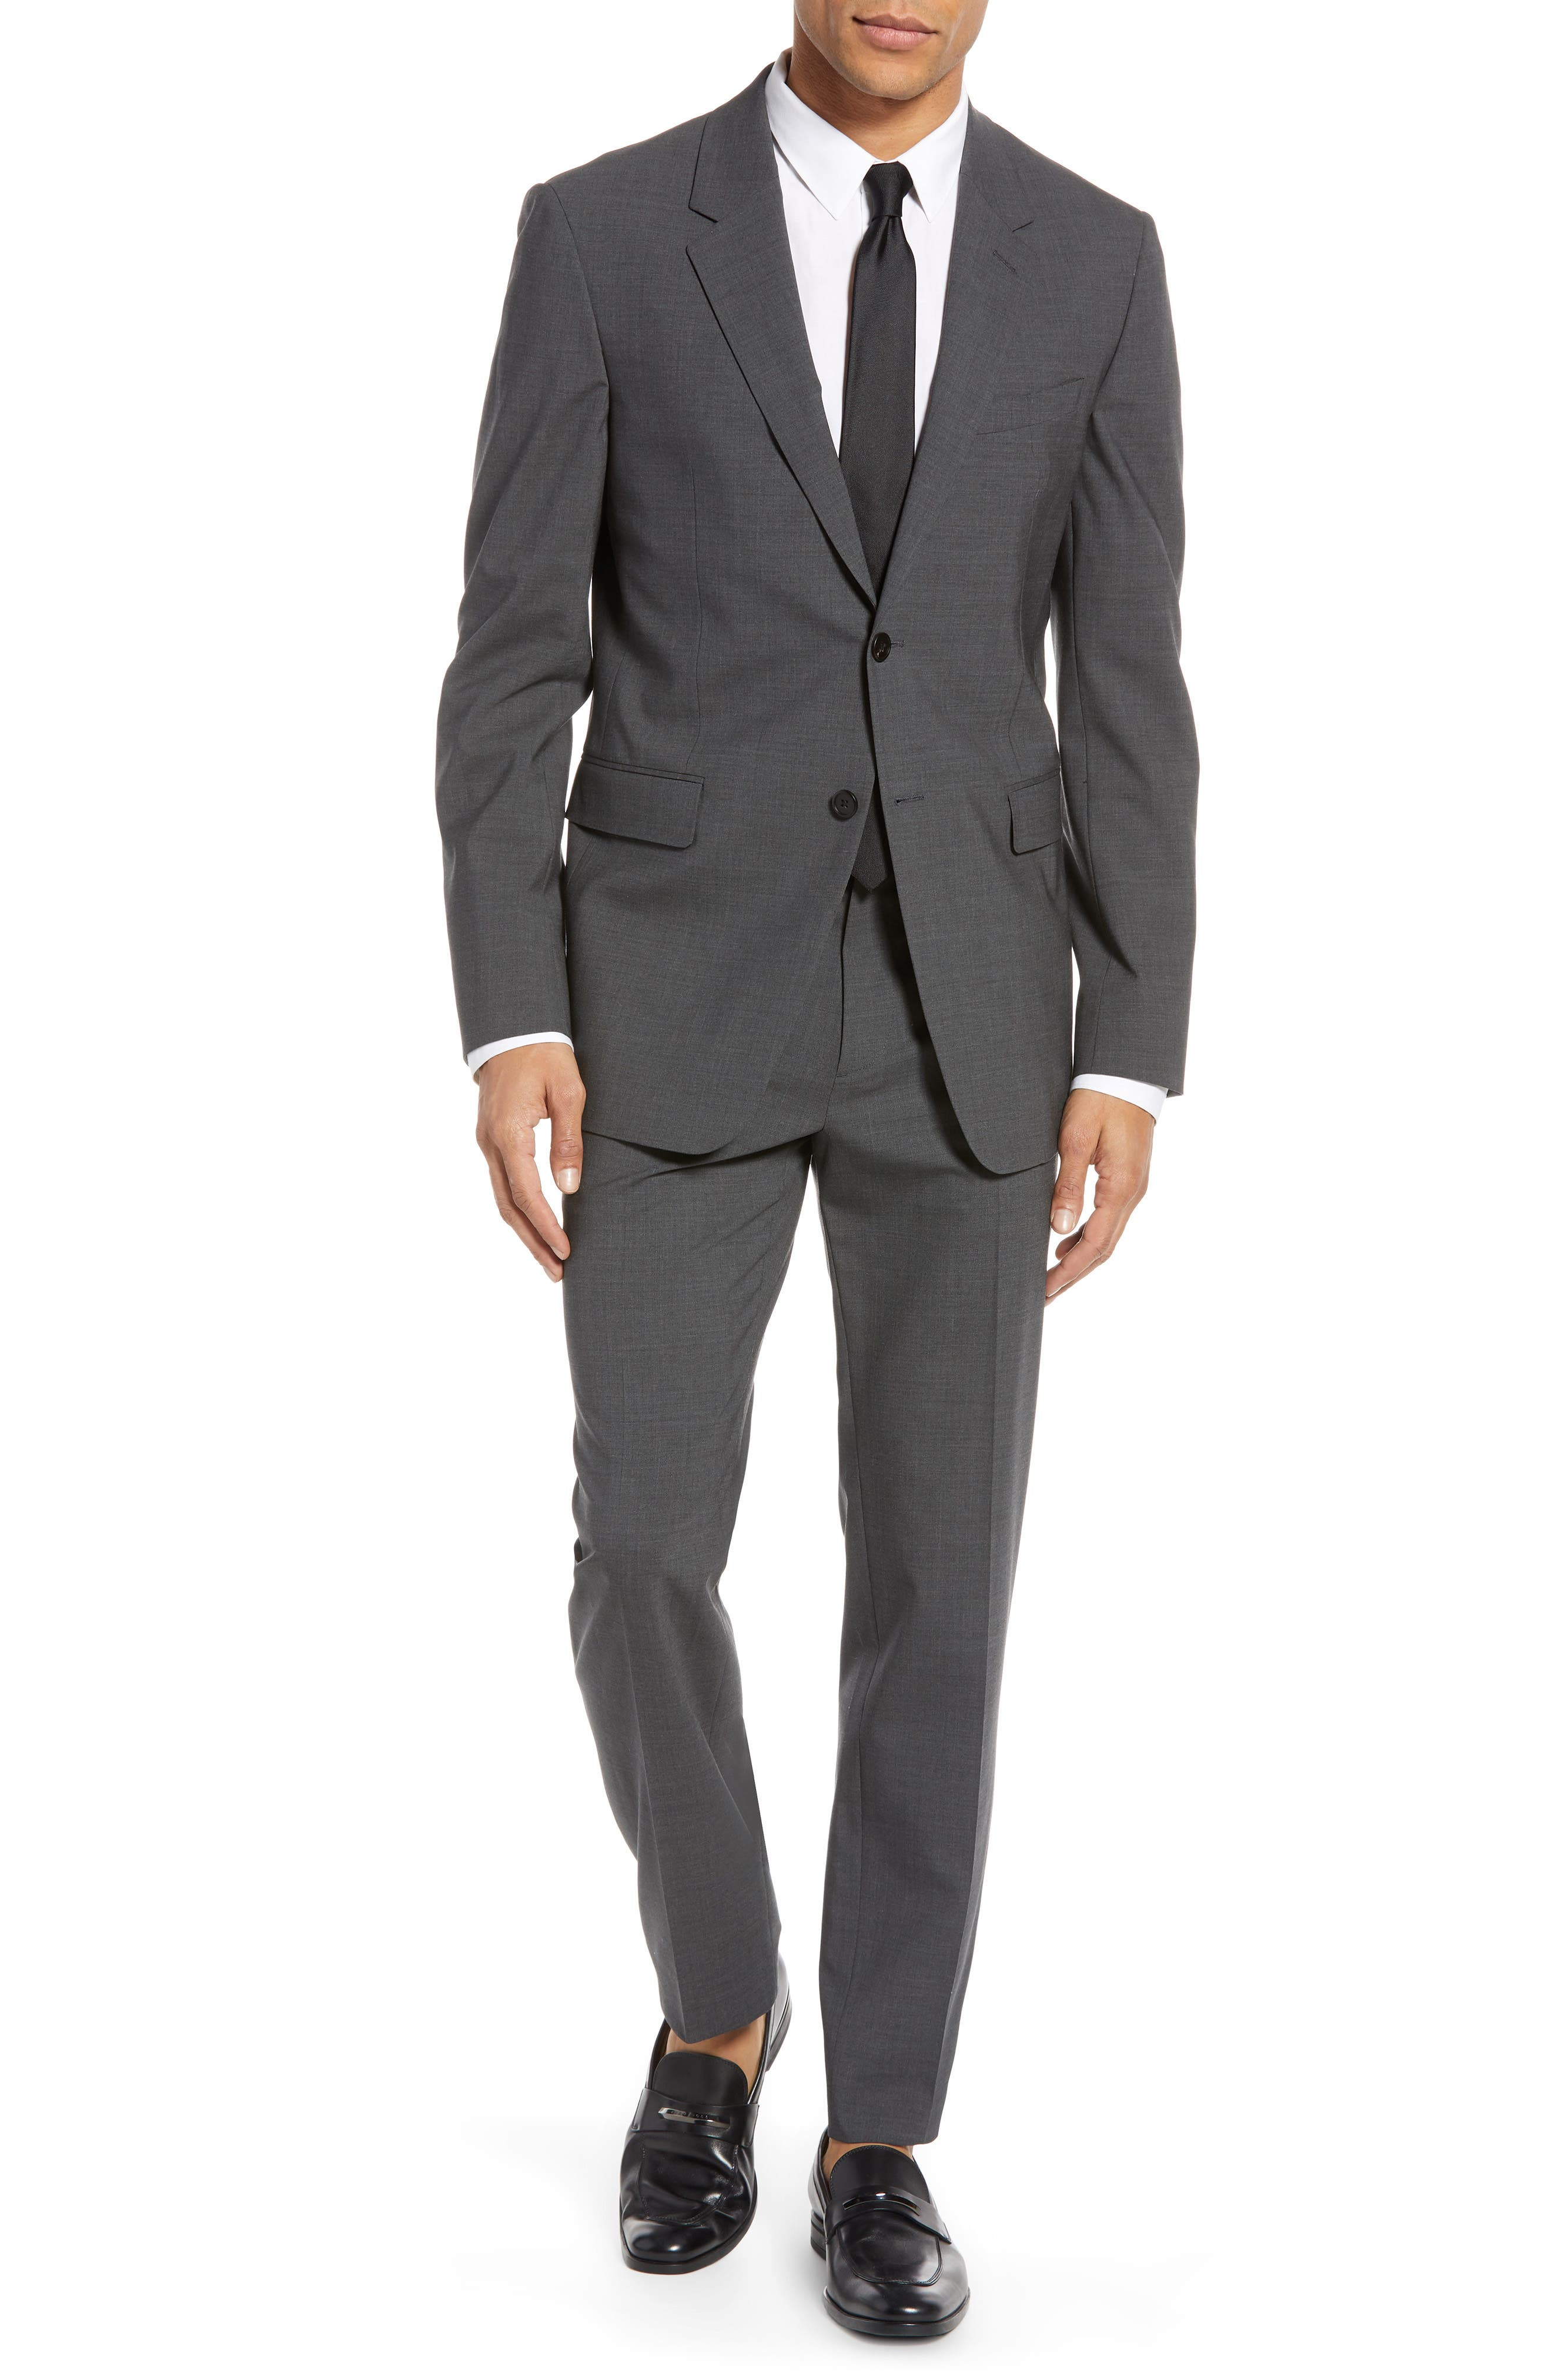 THEORY, Mayer New Tailor 2 Wool Trousers, Alternate thumbnail 7, color, CHARCOAL